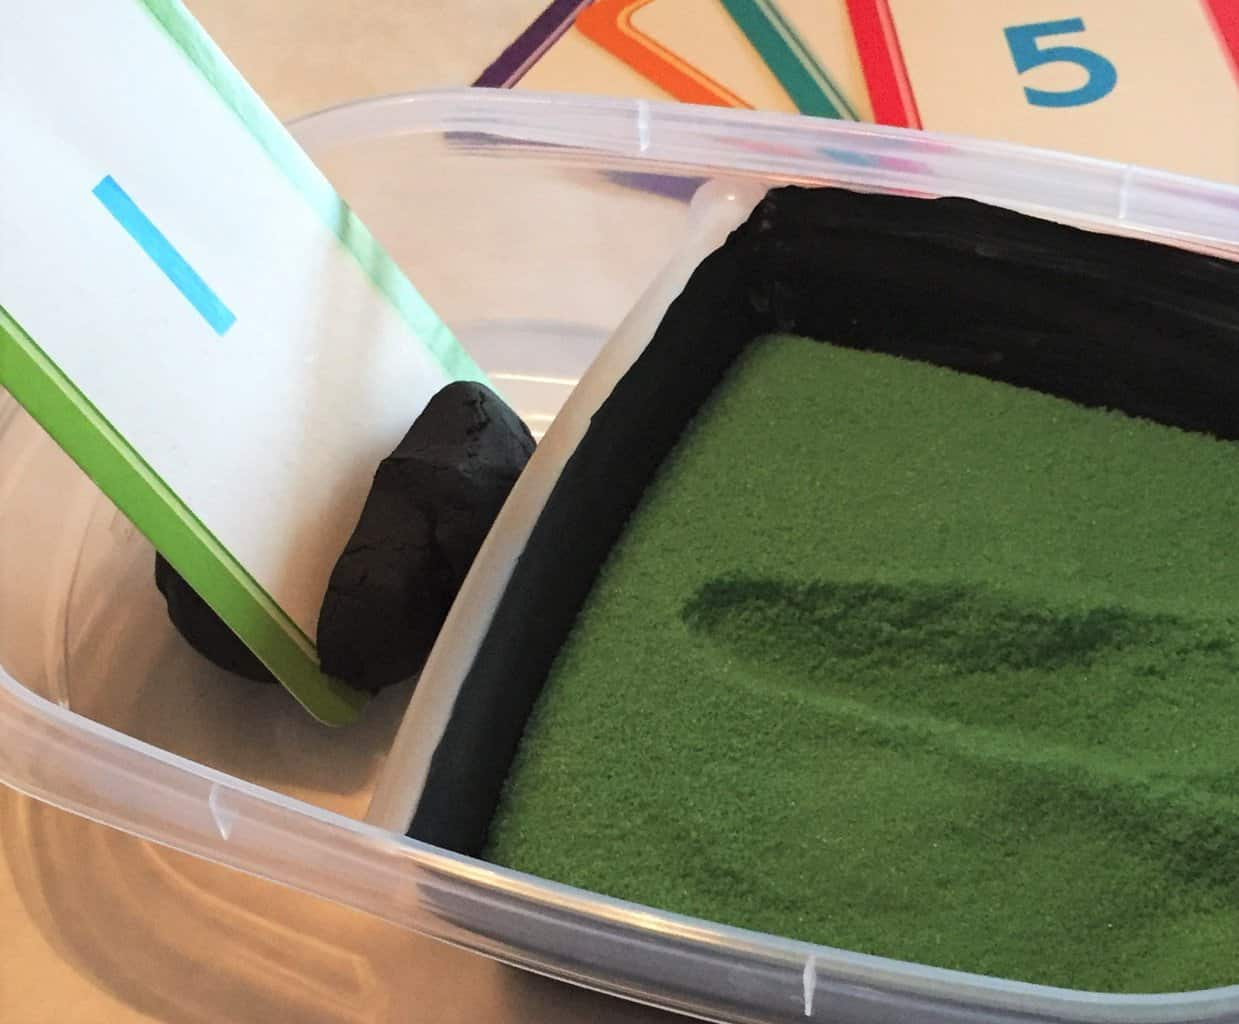 Make your own DIY salt or sand tray for a preschool and toddler writing activity! You can make custom colored salt and create an easy, portable salt tray to help with fine motor, sensory, and pre-writing activities for your little one. Click through for the quick and easy tutorial that will save you big money on preschool supplies too!